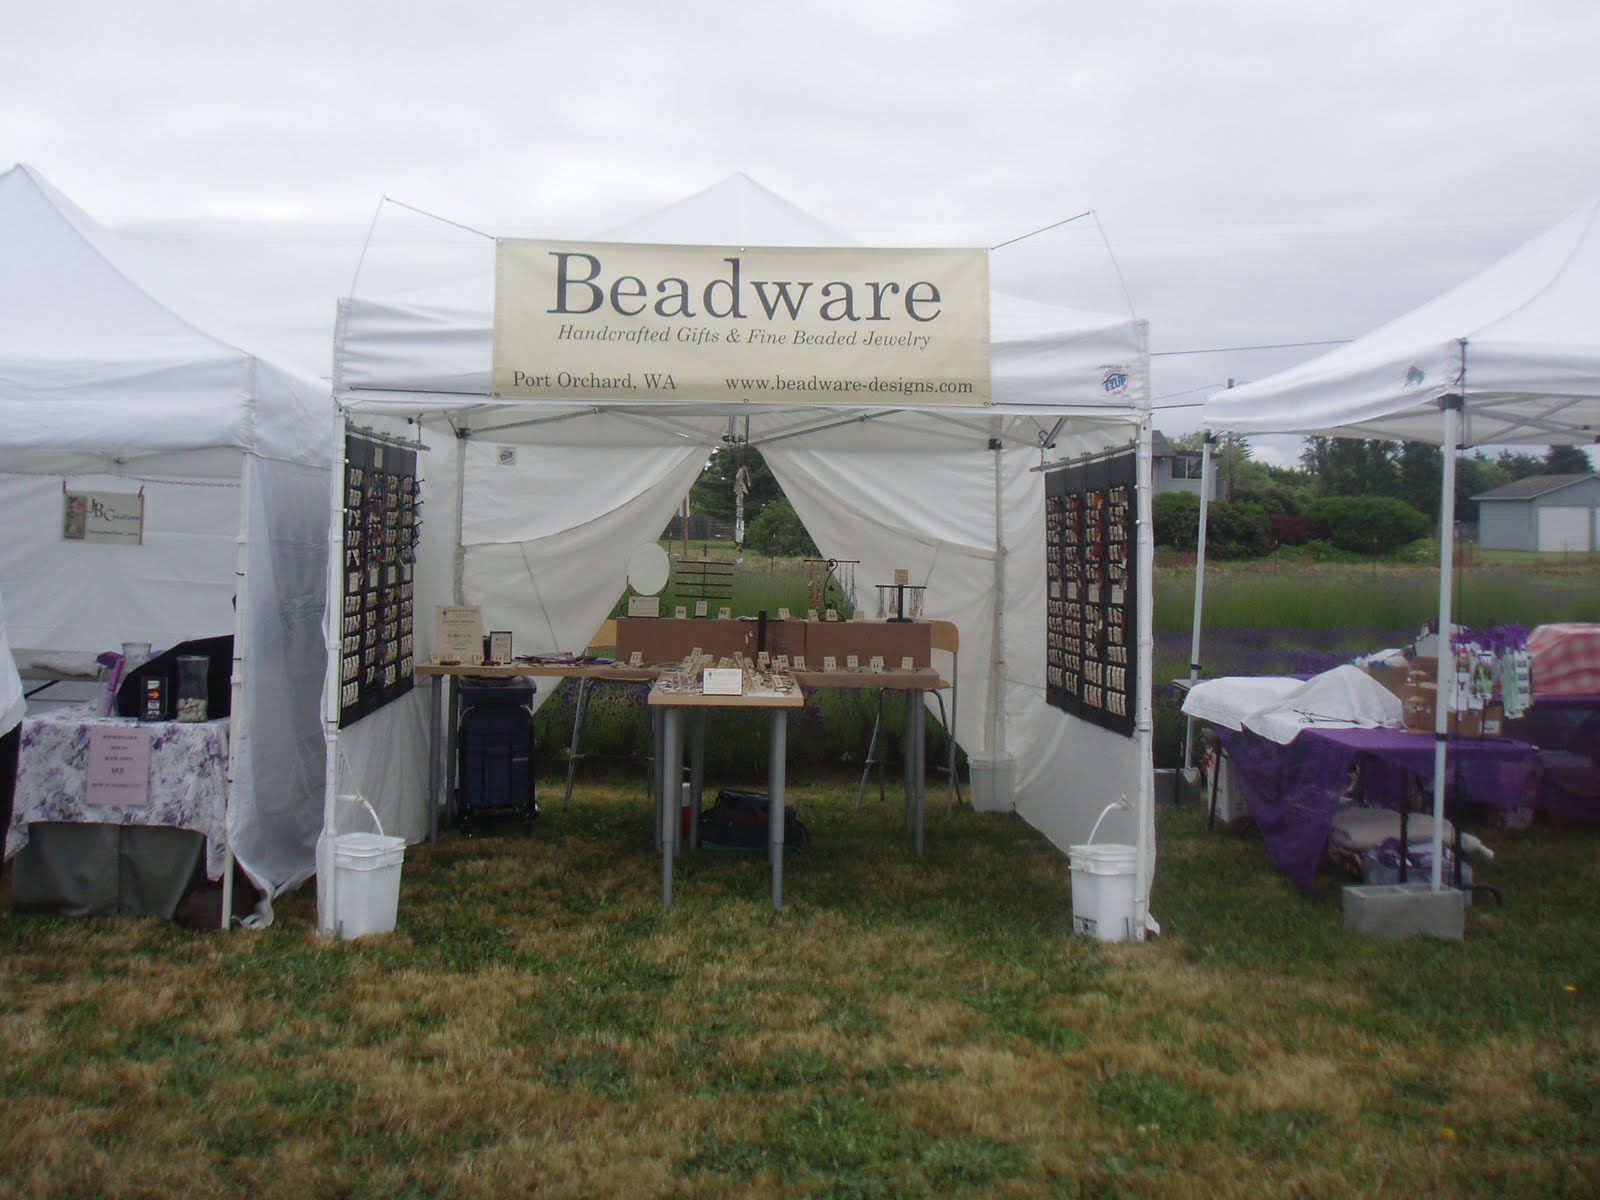 Beadware: View from my Tent - Lavender